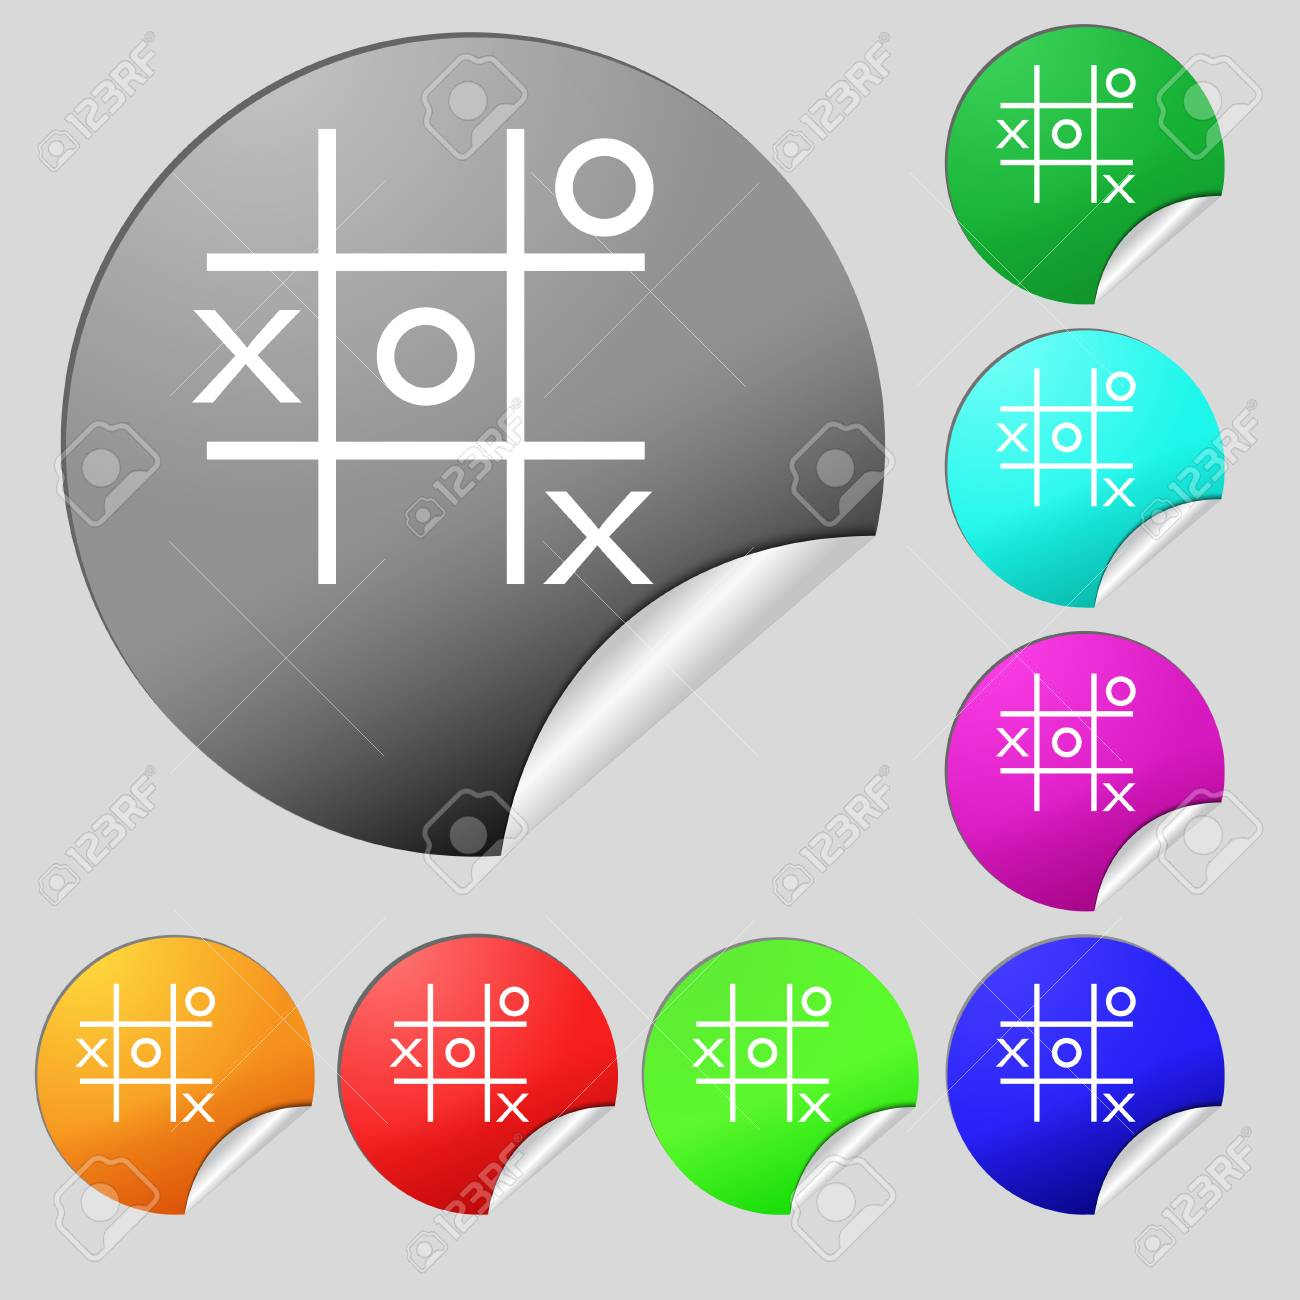 tic tac toe multiple game